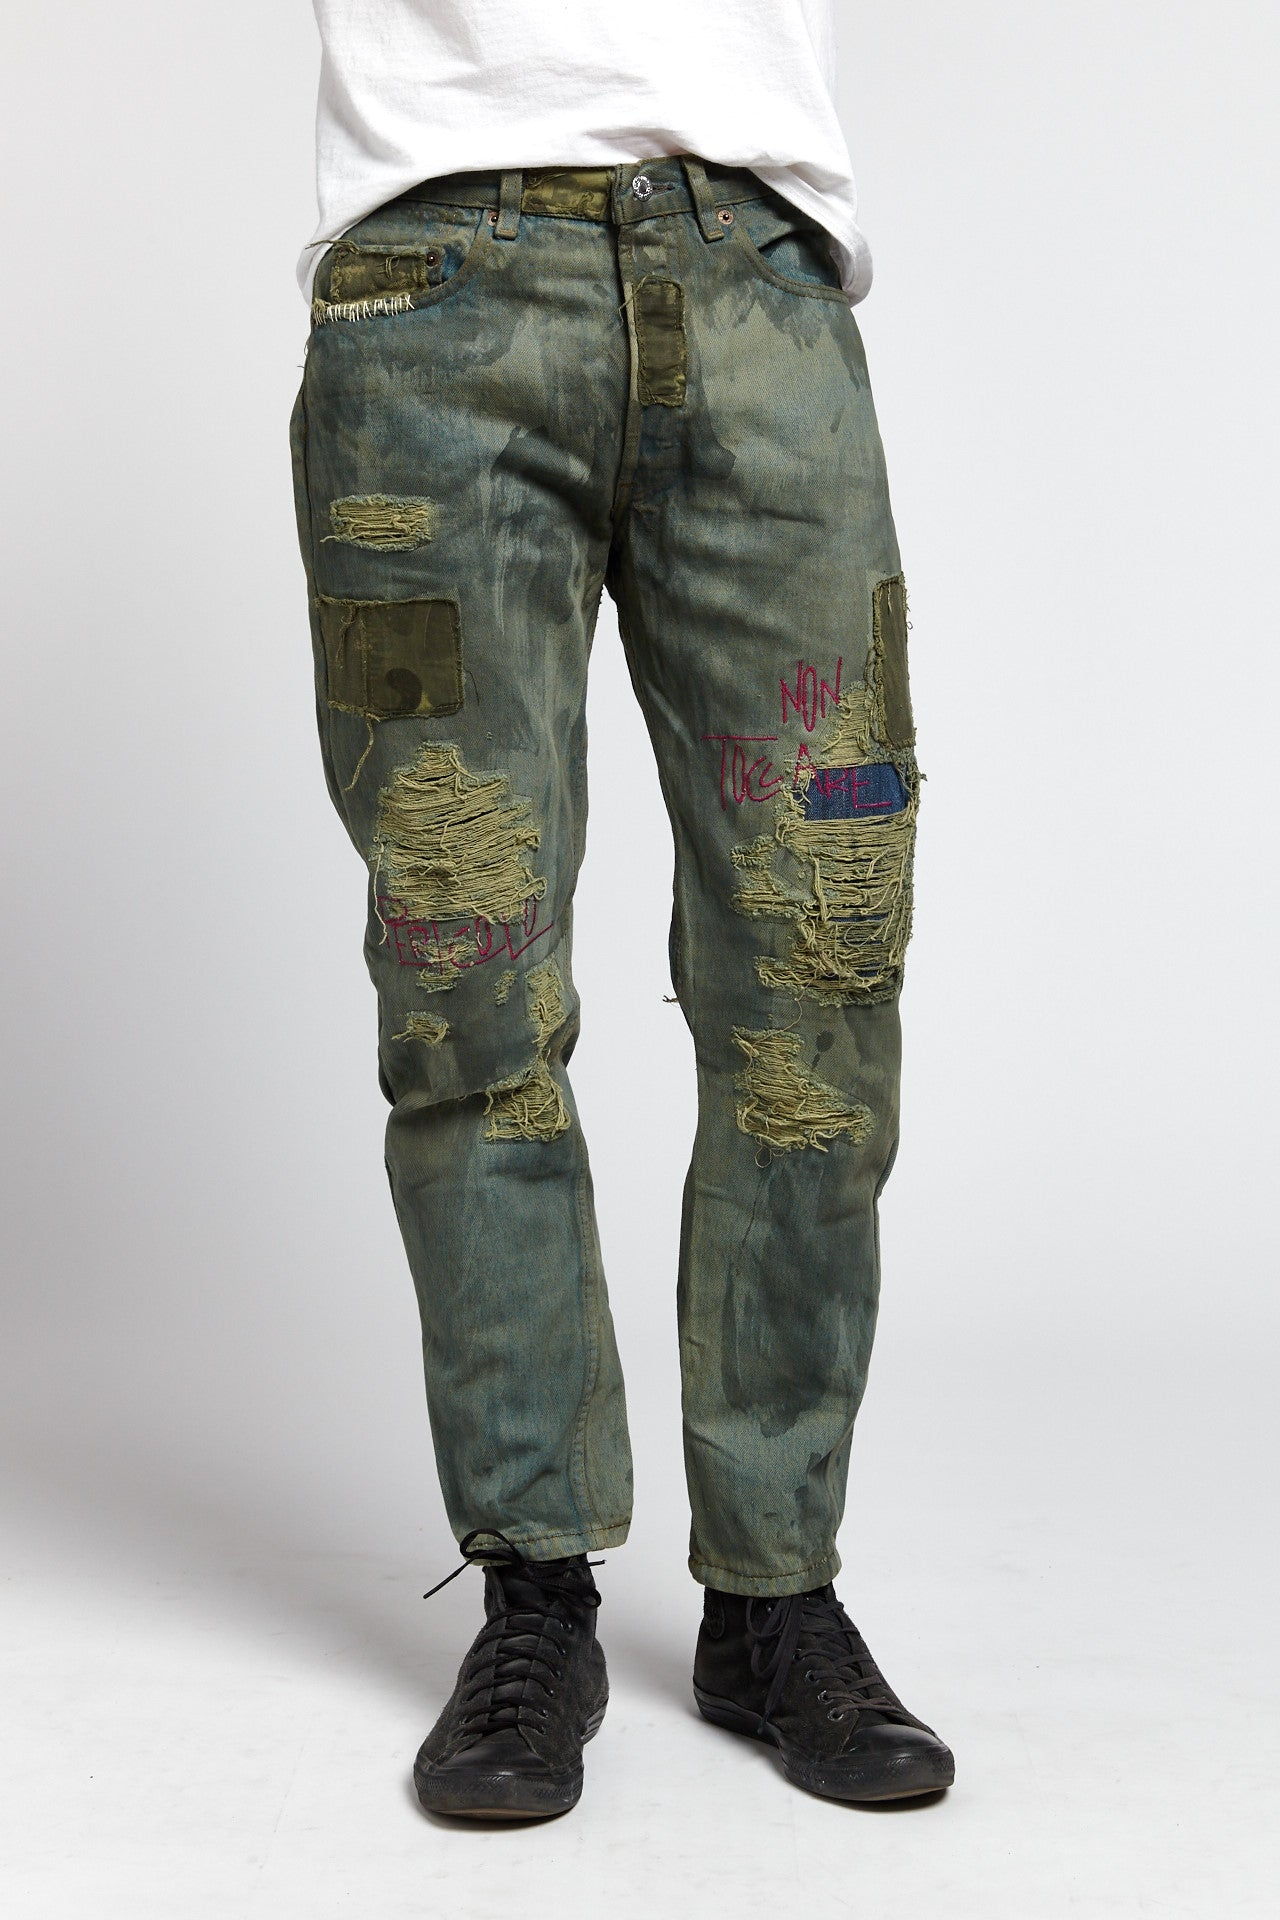 TOSSICO DISTRESSED COTTON BLUE GREEN 31 W JEANS-BOTTOMS-Mundane Official-31-BLUE/GREEN-Mundane Official